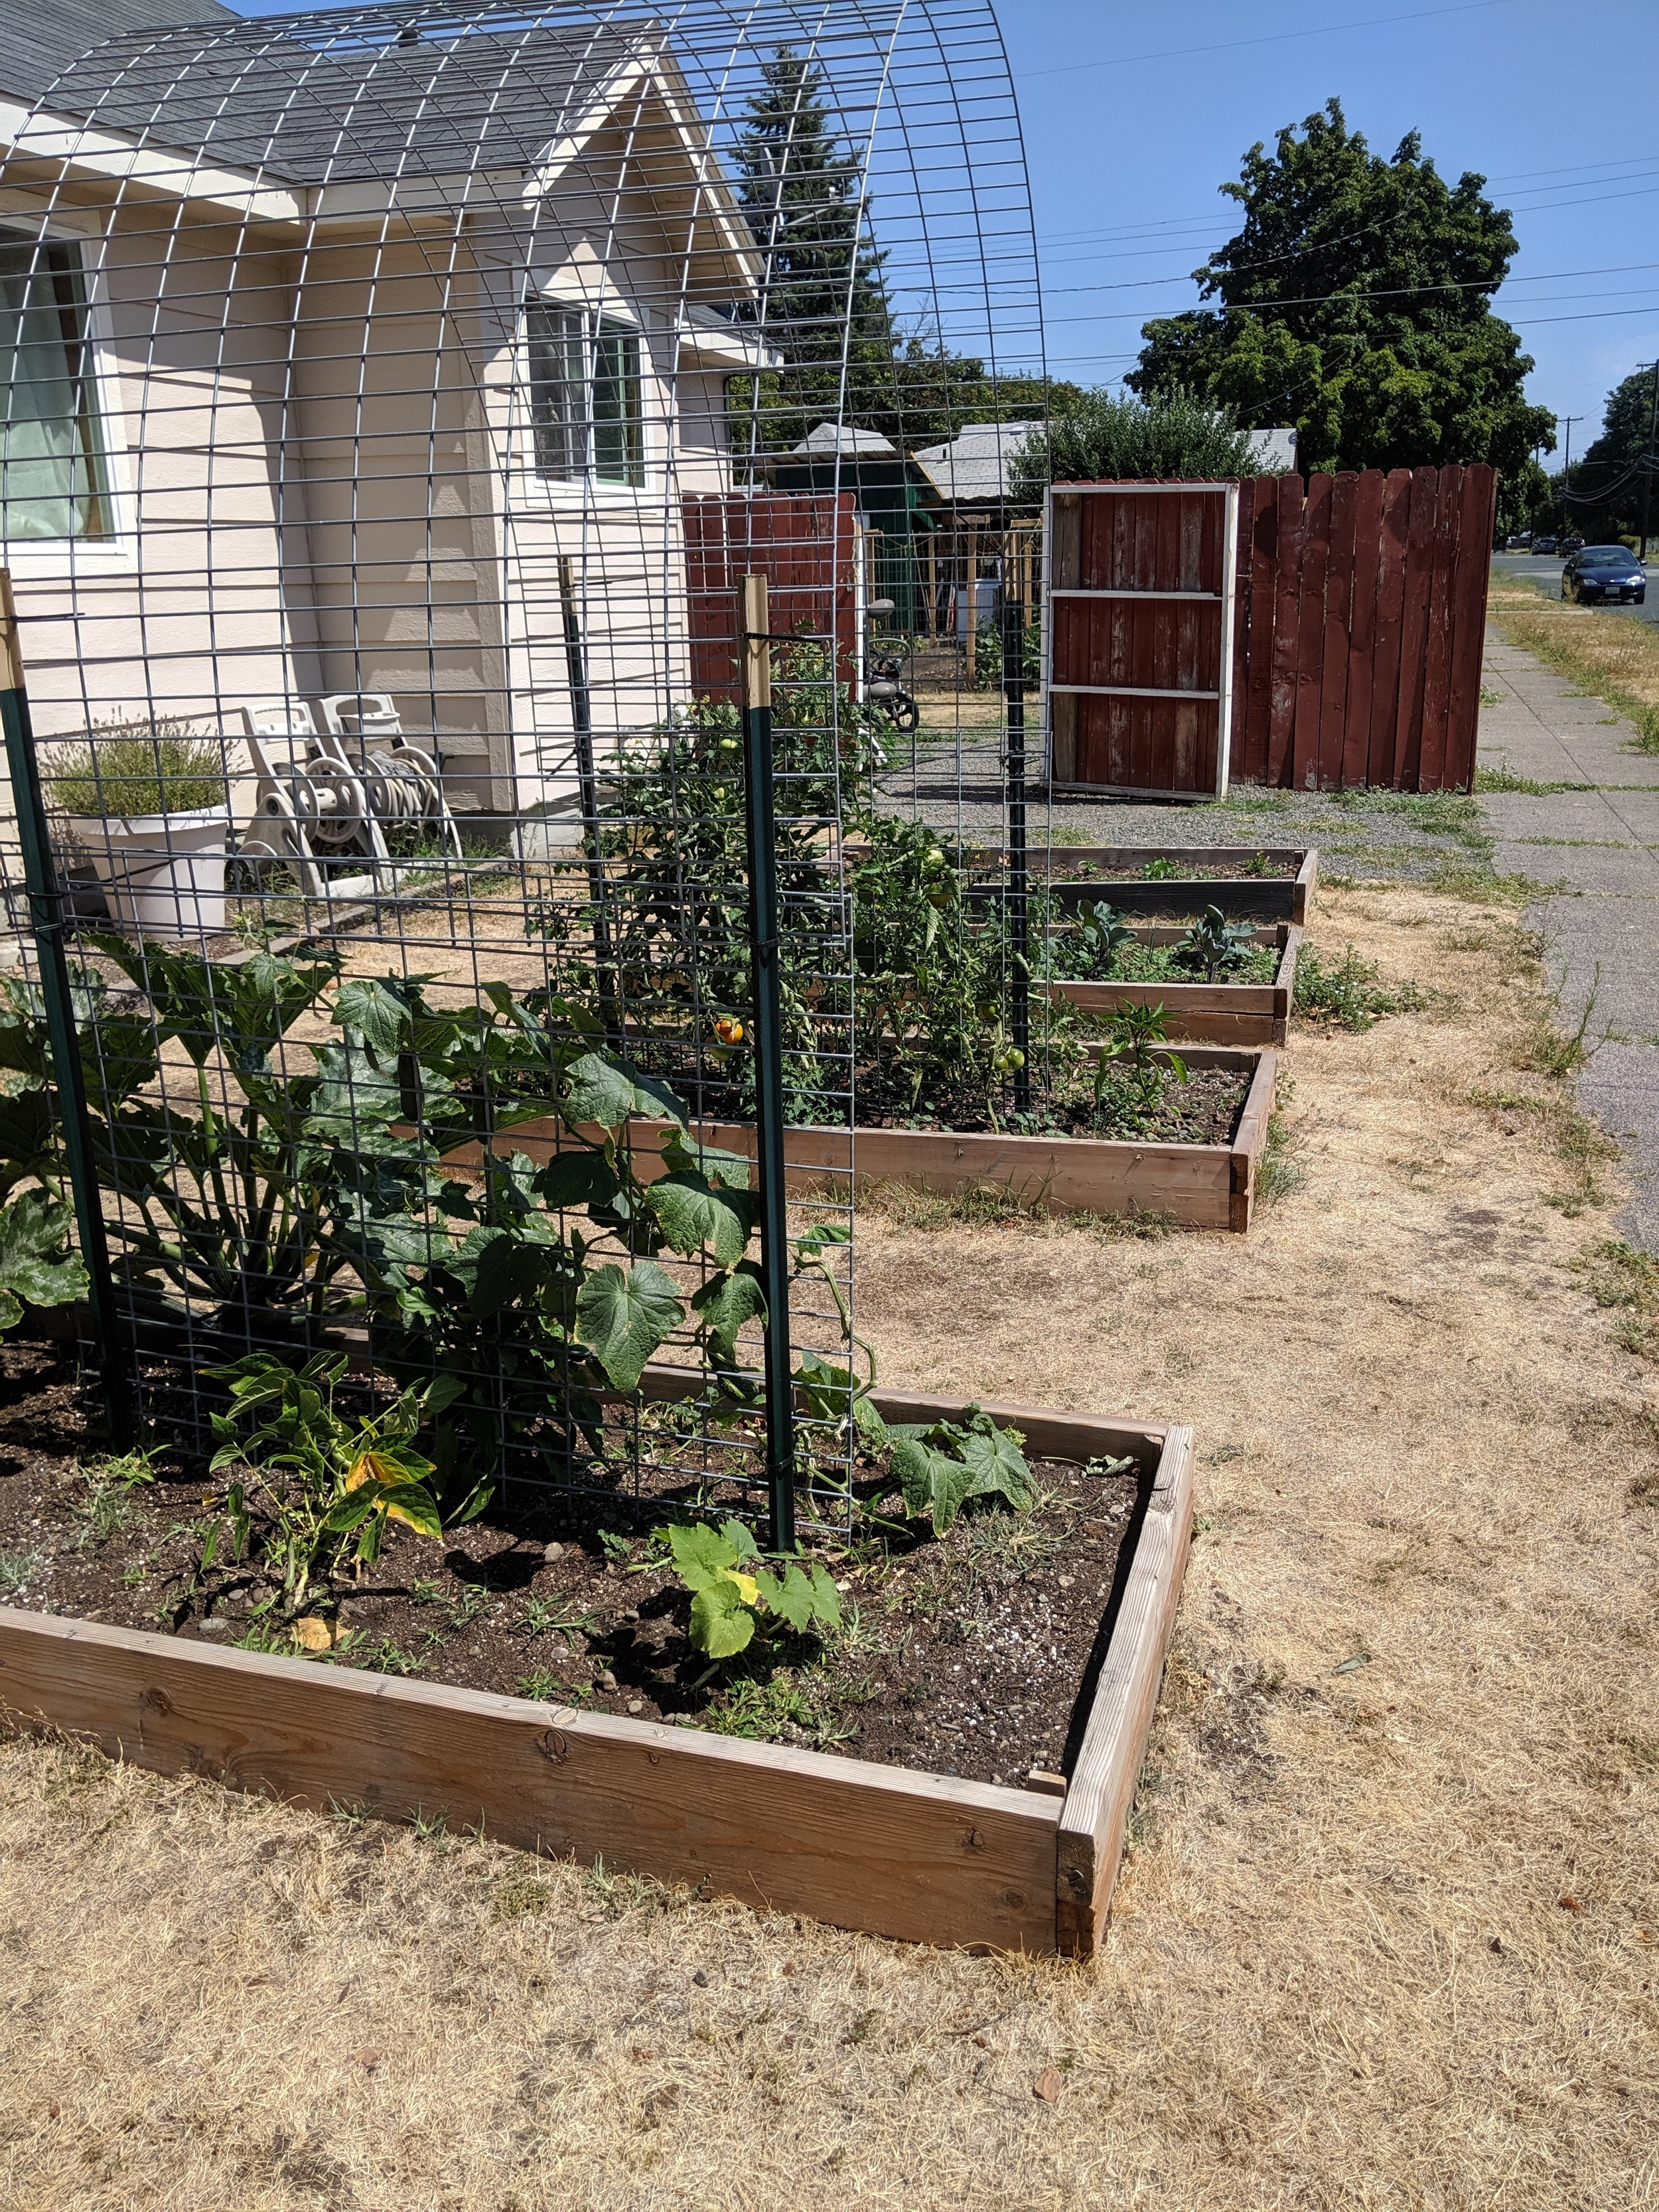 Gleaning Beds : Community members can stop by and harvest from these beds in Phillip and Shaneese's front yard! They hope to fill their entire front lawn with gleaning beds.